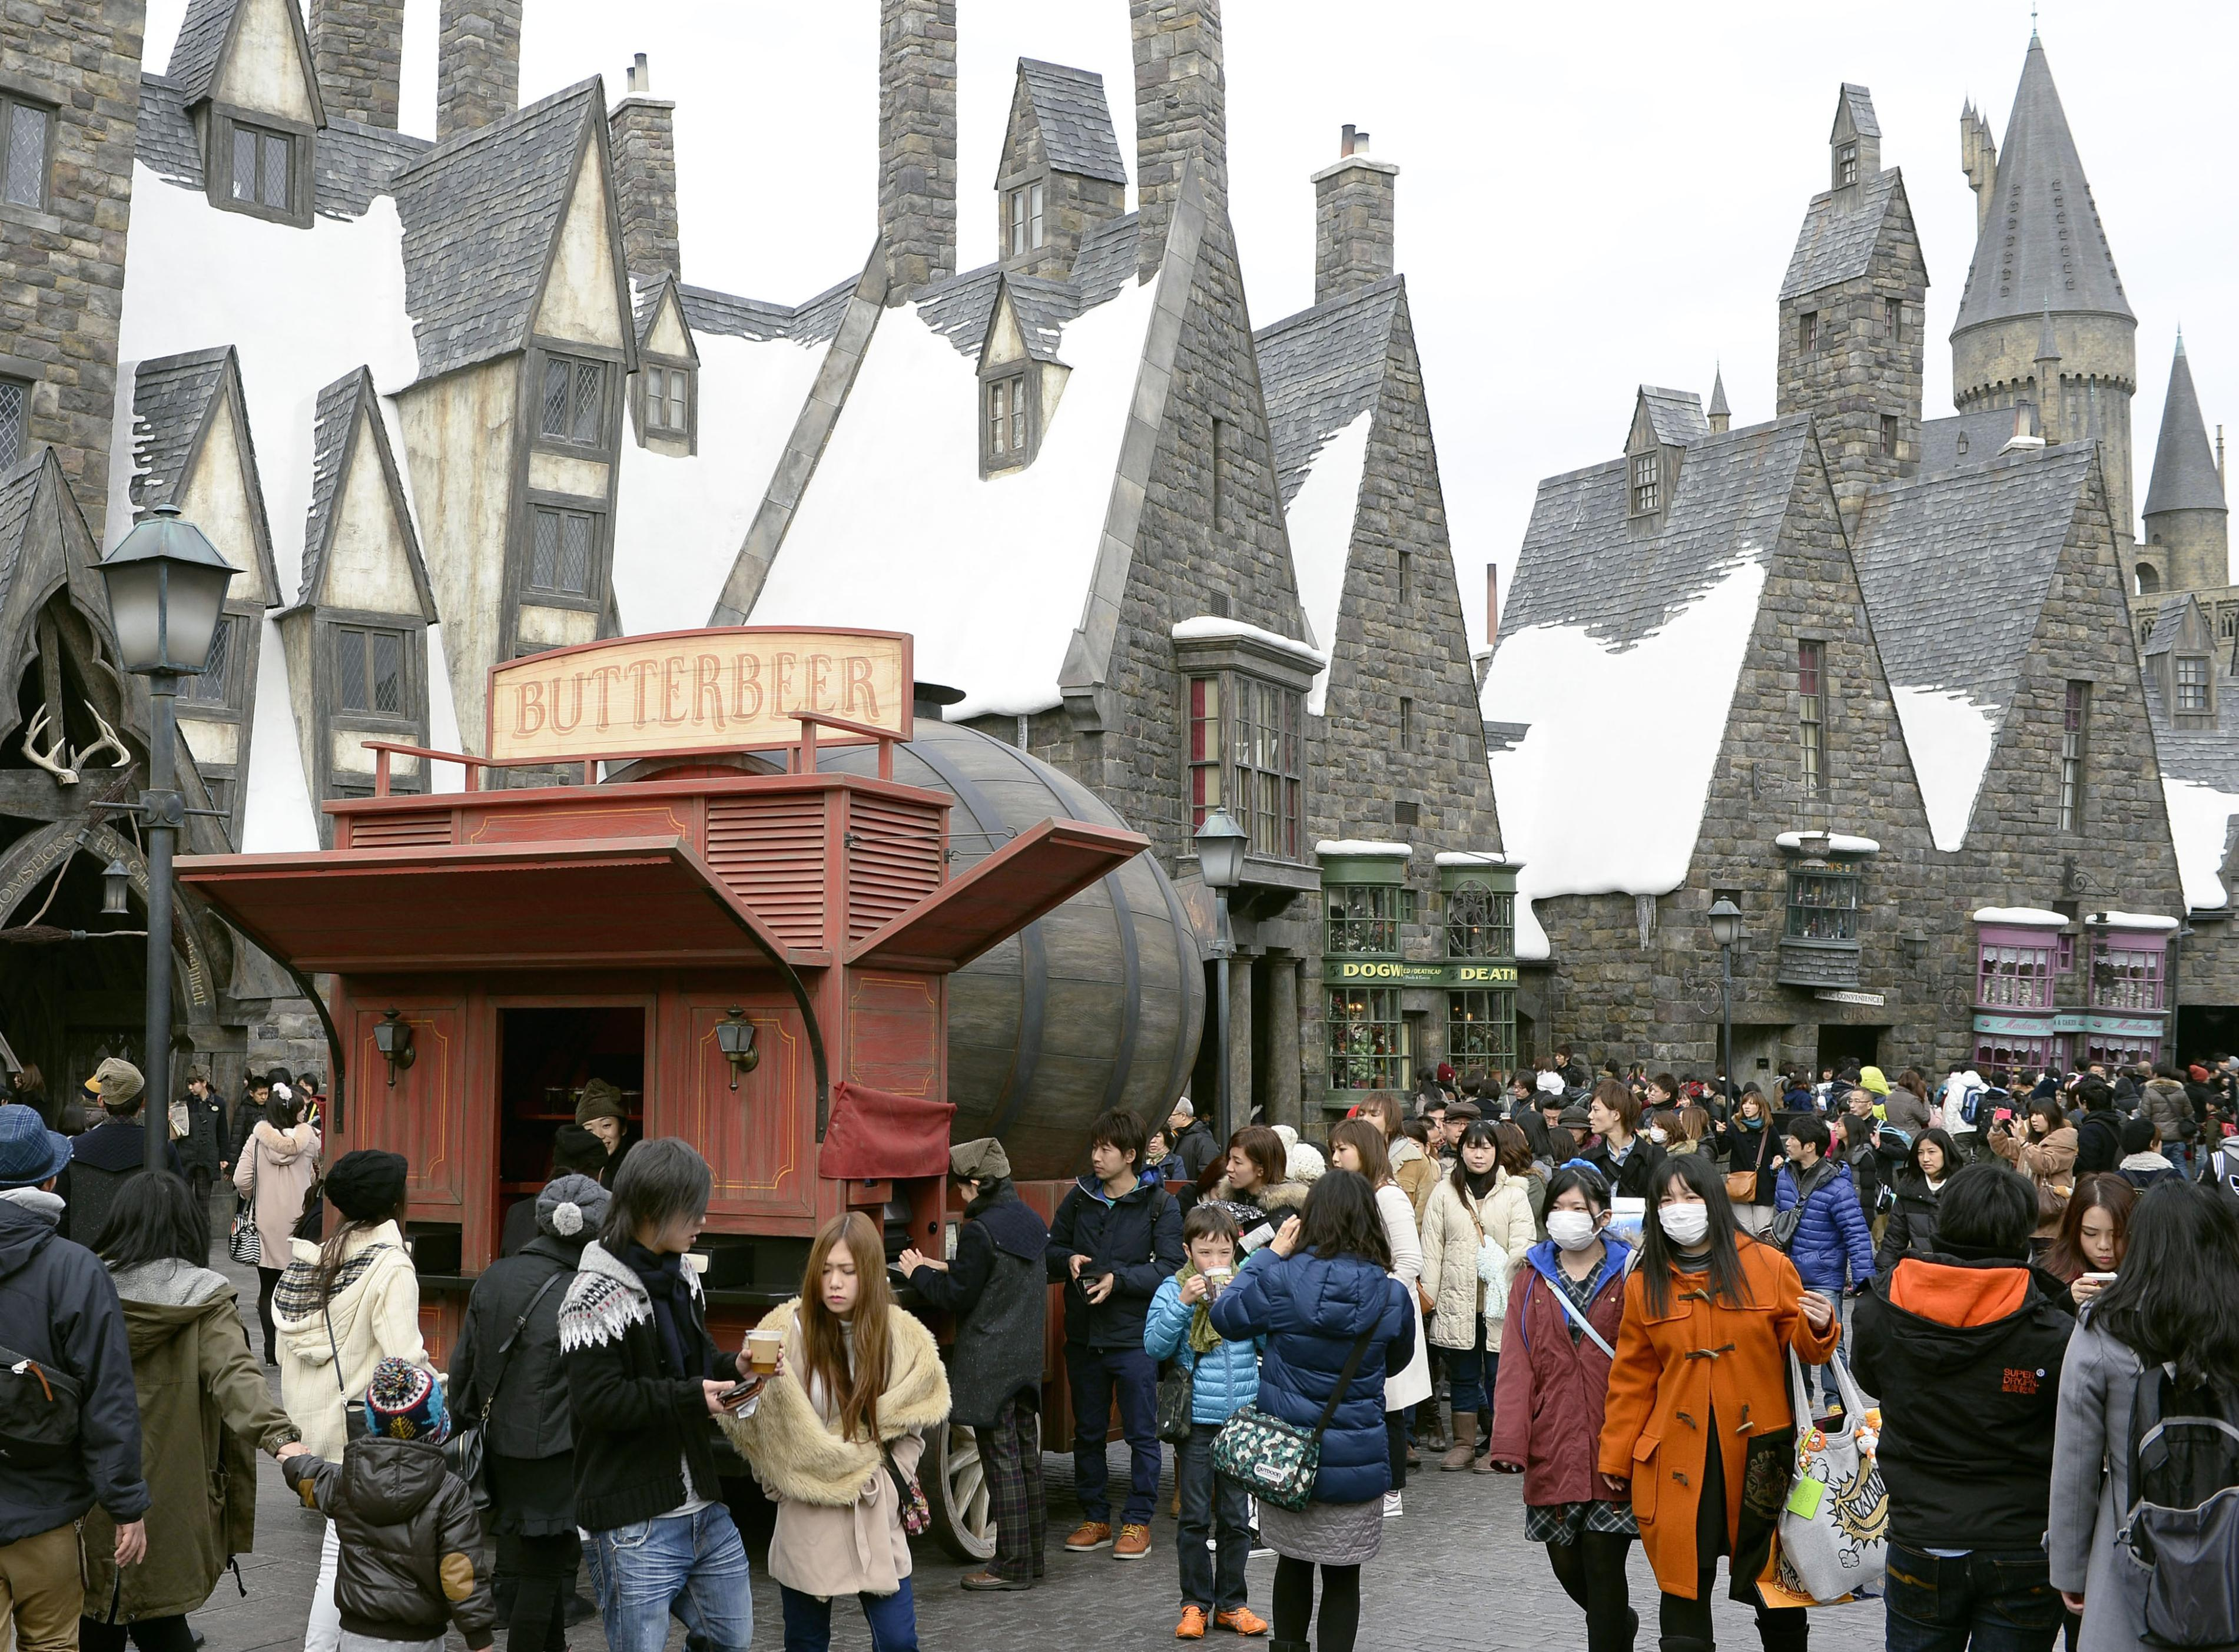 The Wizarding World of Harry Potter area of Universal Studios Japan is ...: www.japantimes.co.jp/news/2015/02/13/national/jr-west-launch-harry...